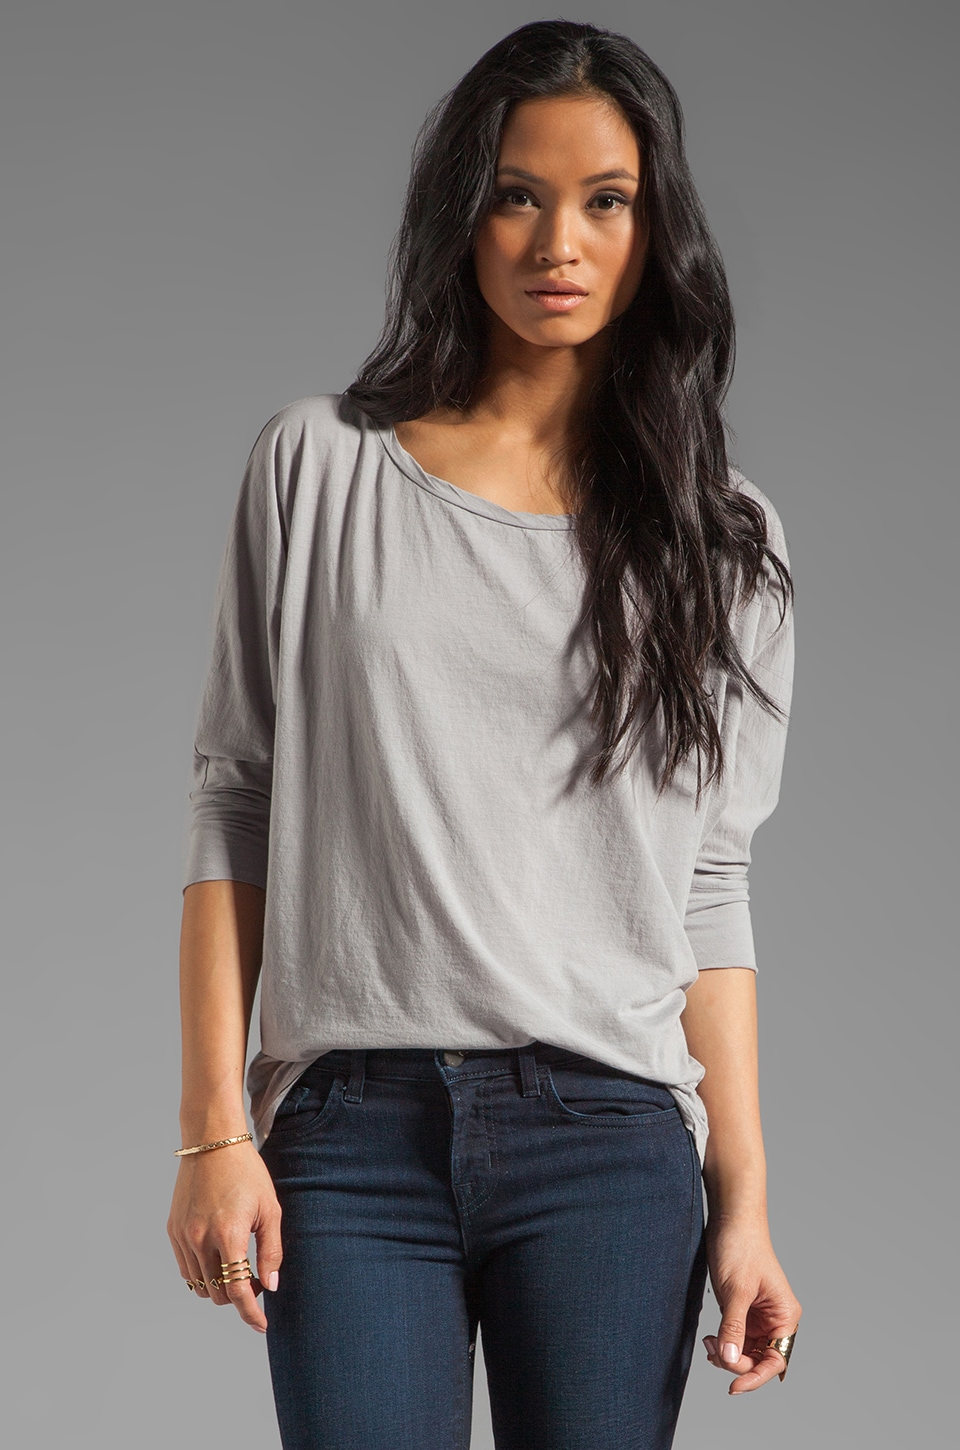 Velvet by Graham & Spencer Sheer Jersey Carden Top in Alaska